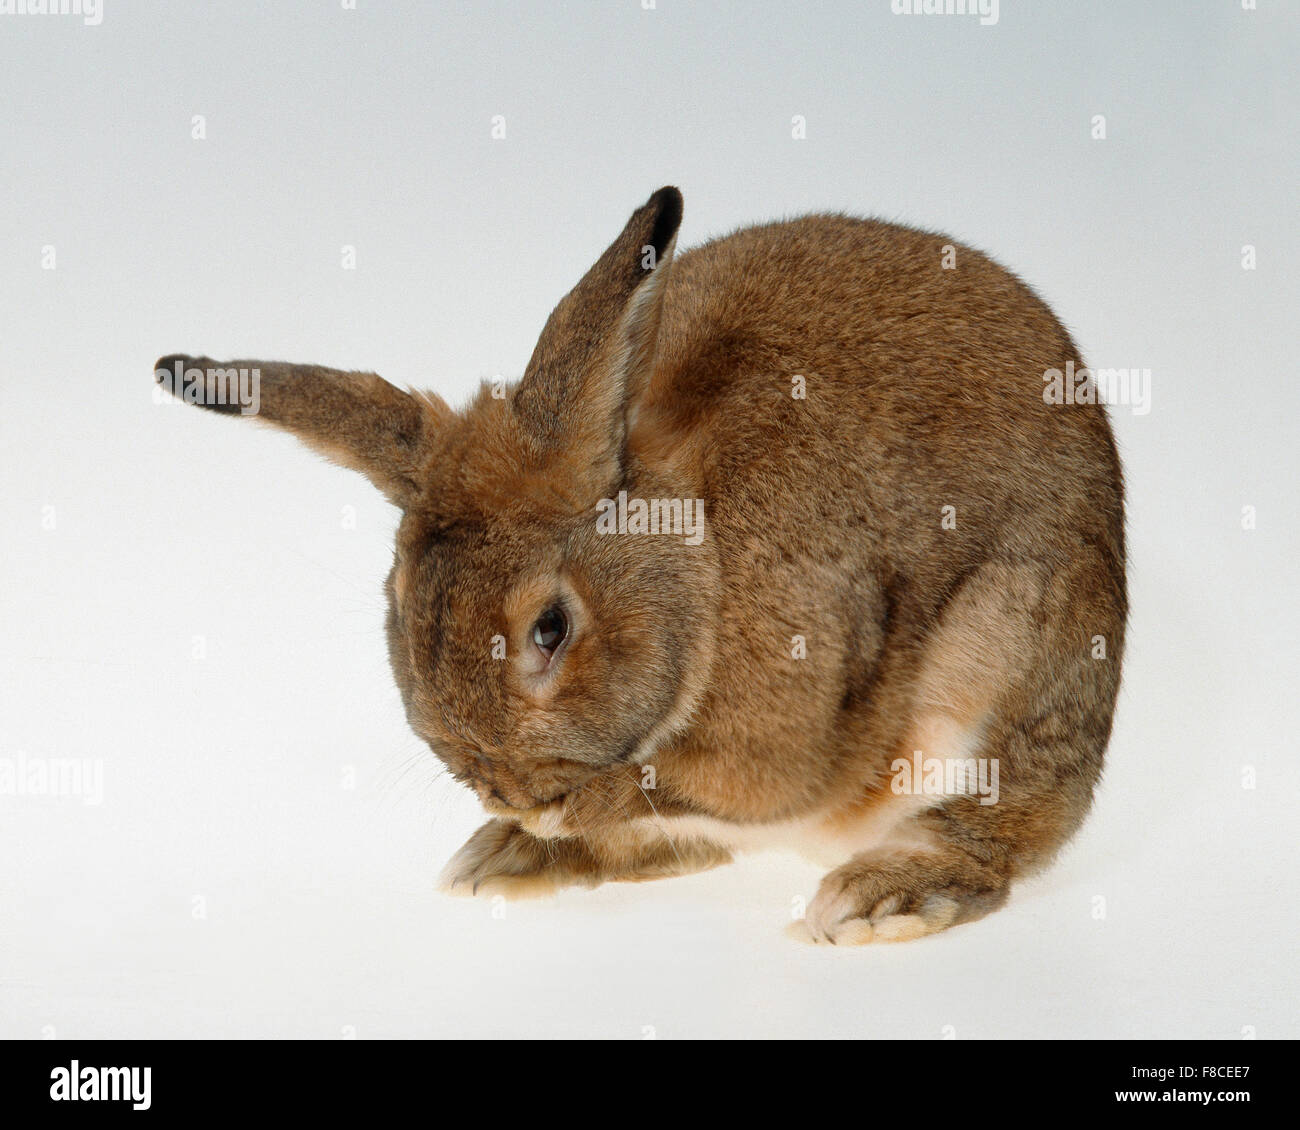 rabbit on a neutral background Stock Photo